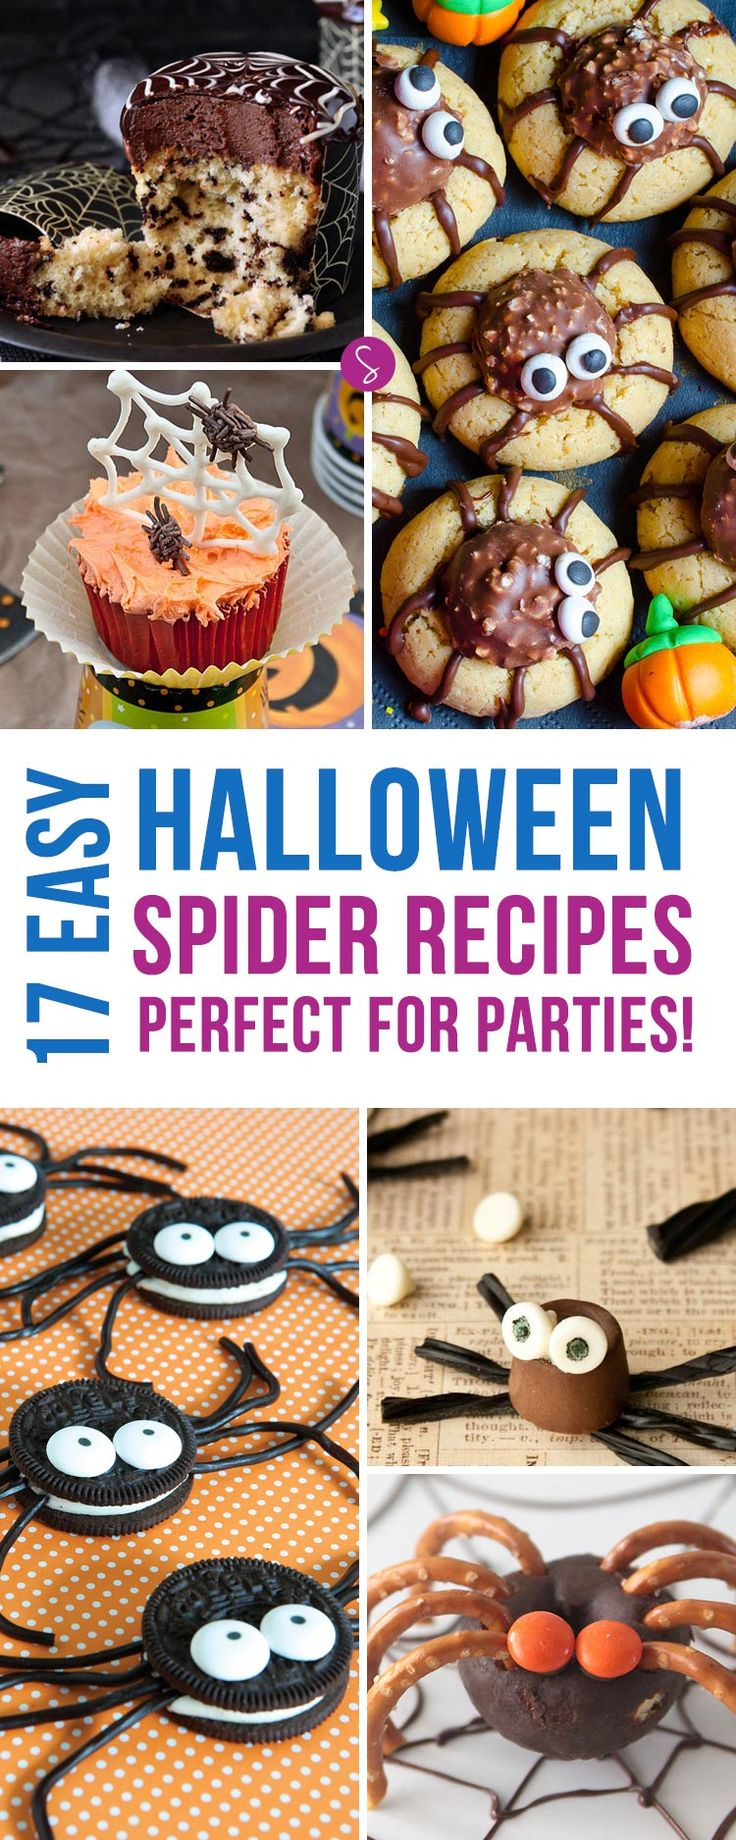 17 Best images about Halloween Fun on Pinterest   Last minute ...